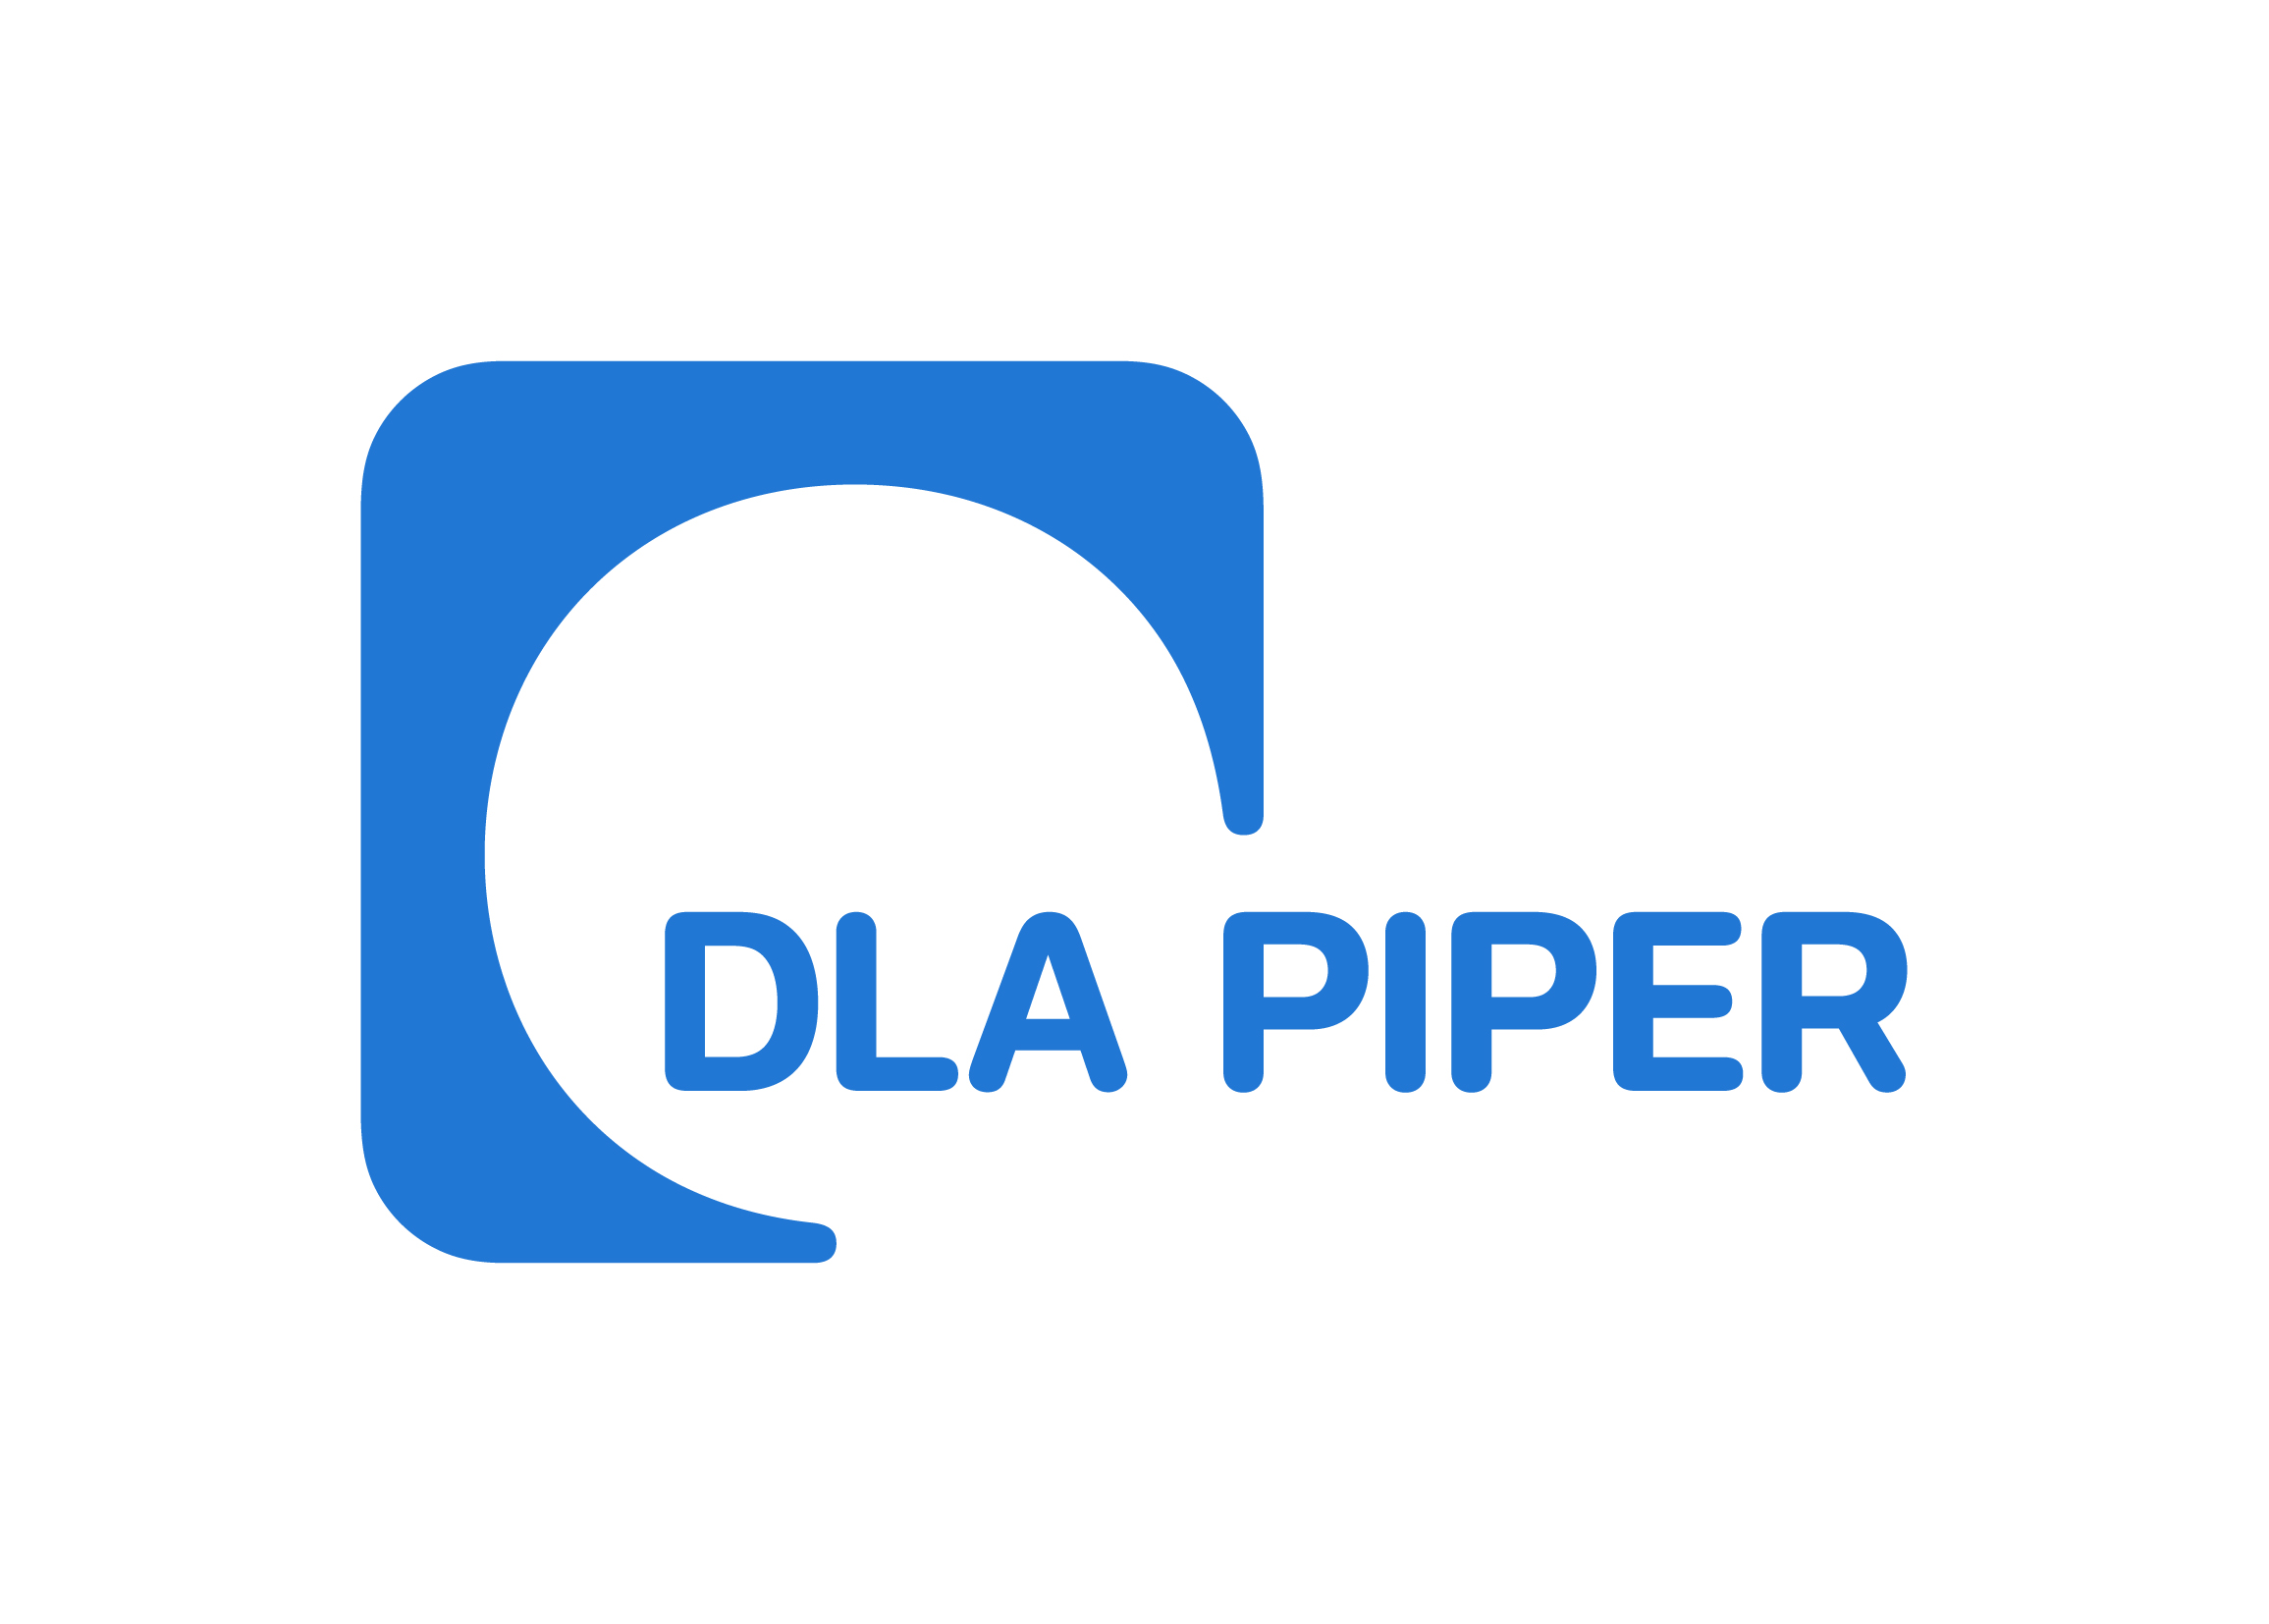 https://www.pro-manchester.co.uk/wp-content/uploads/2014/03/DLA_Piper.jpg